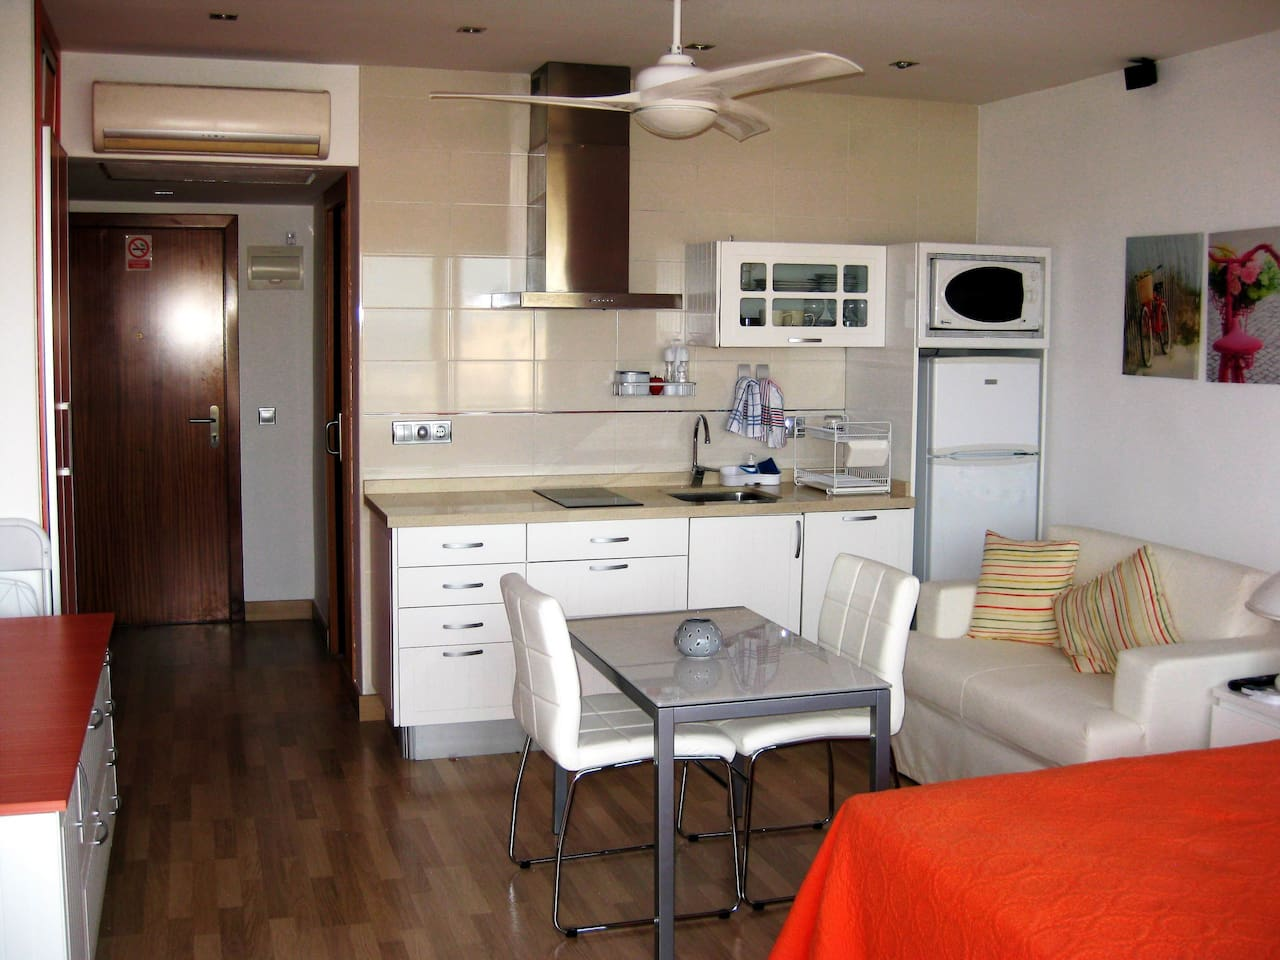 General view, entrance, air conditioning, fan,  kitchen, table with chairs, sofa-bed, and just a small part of couple bed and sideboard.